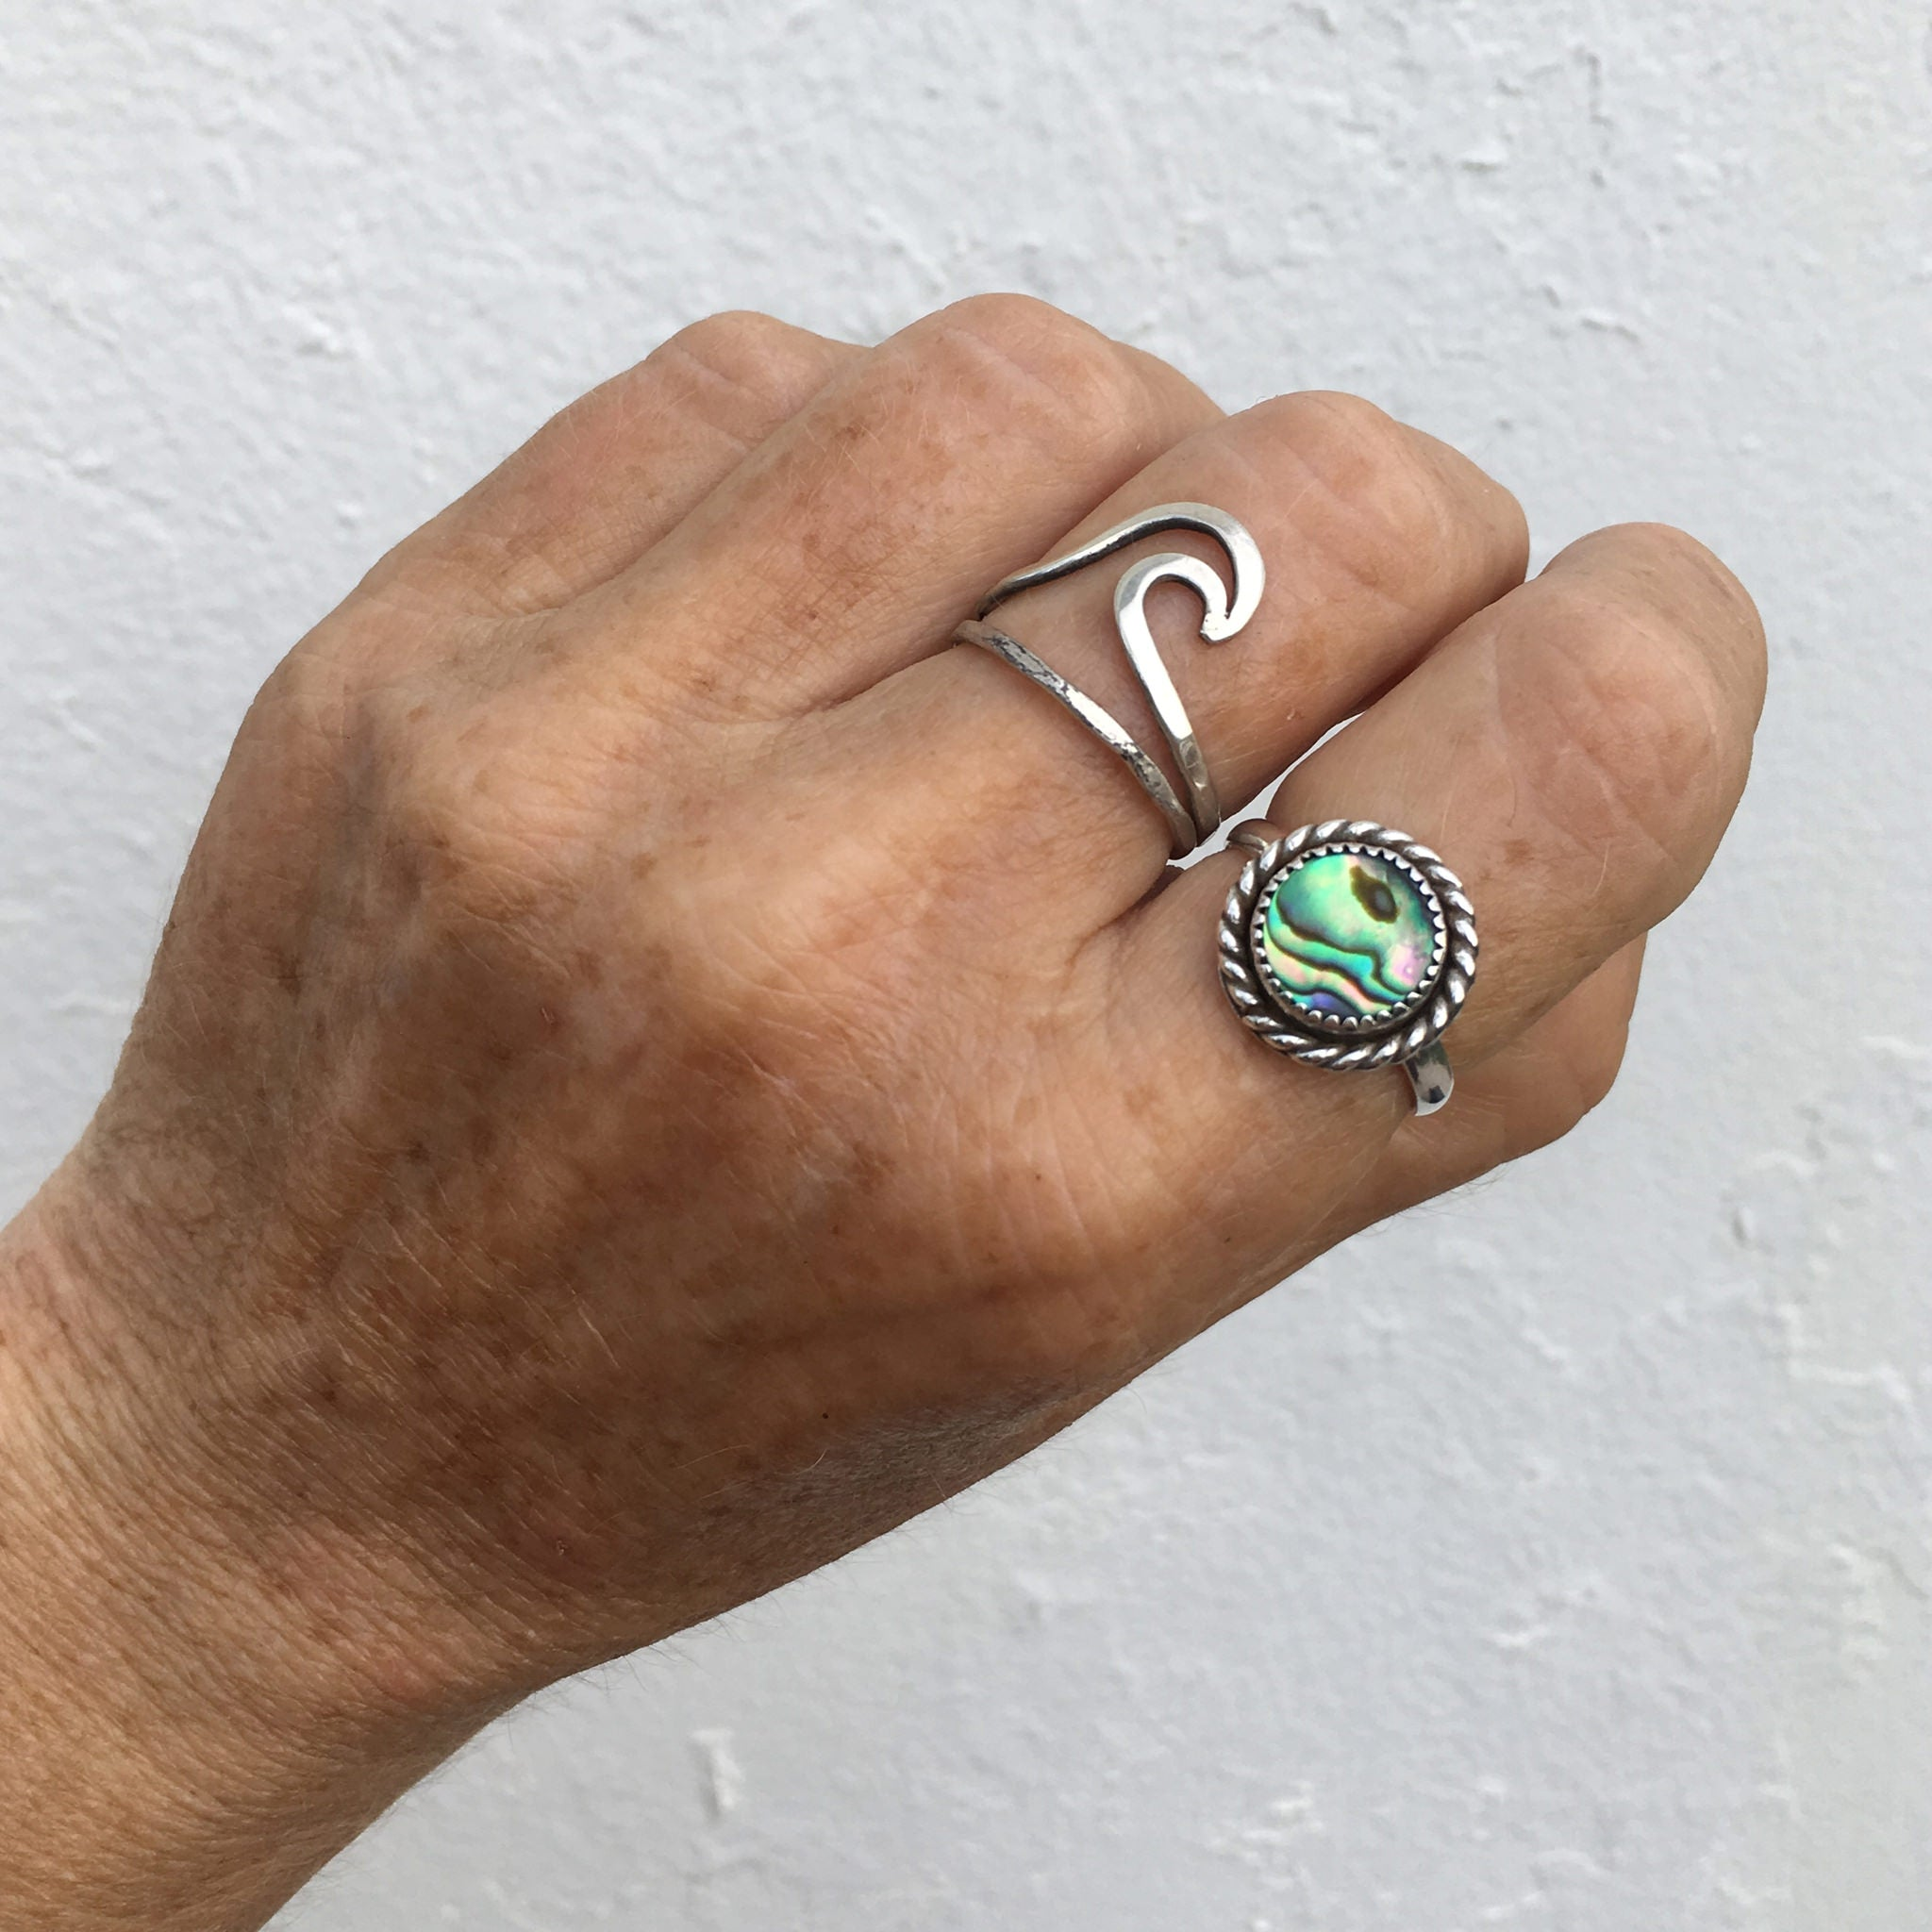 The-Dawntreader-Abalone-Shell-Ring-On-Hand-SpecialJCreations